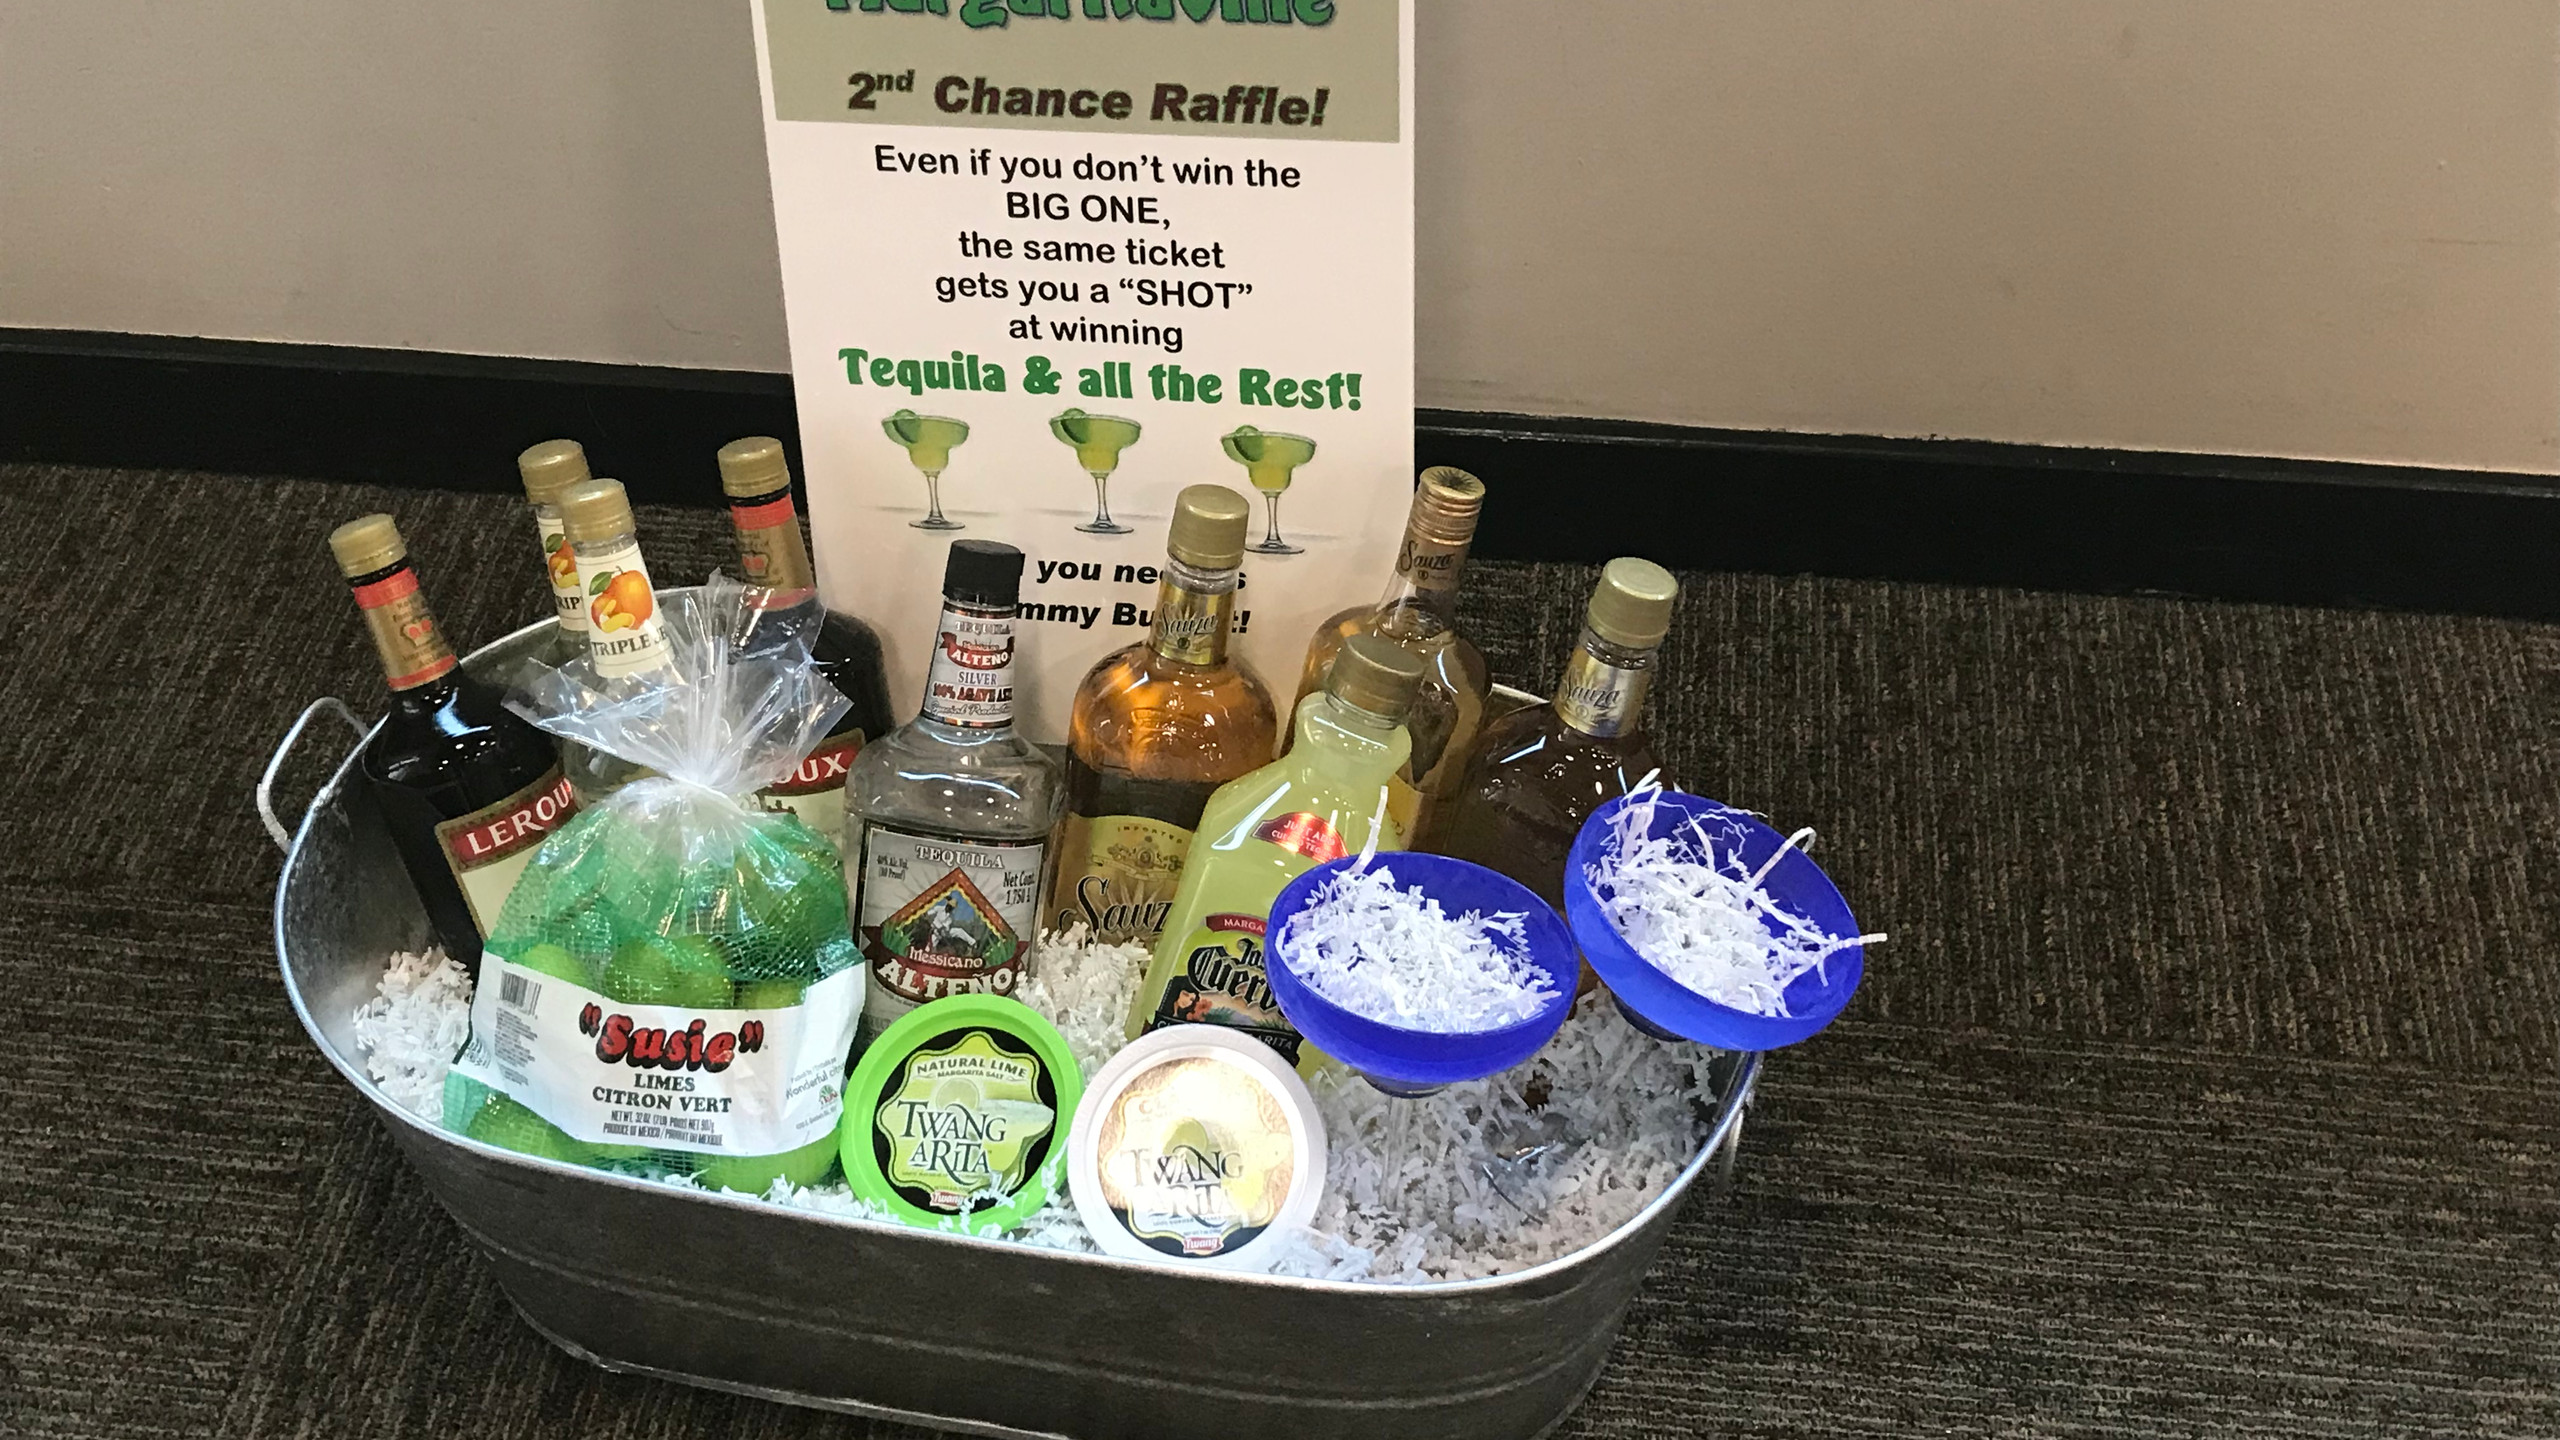 6-Second Chance Margarita Raffle